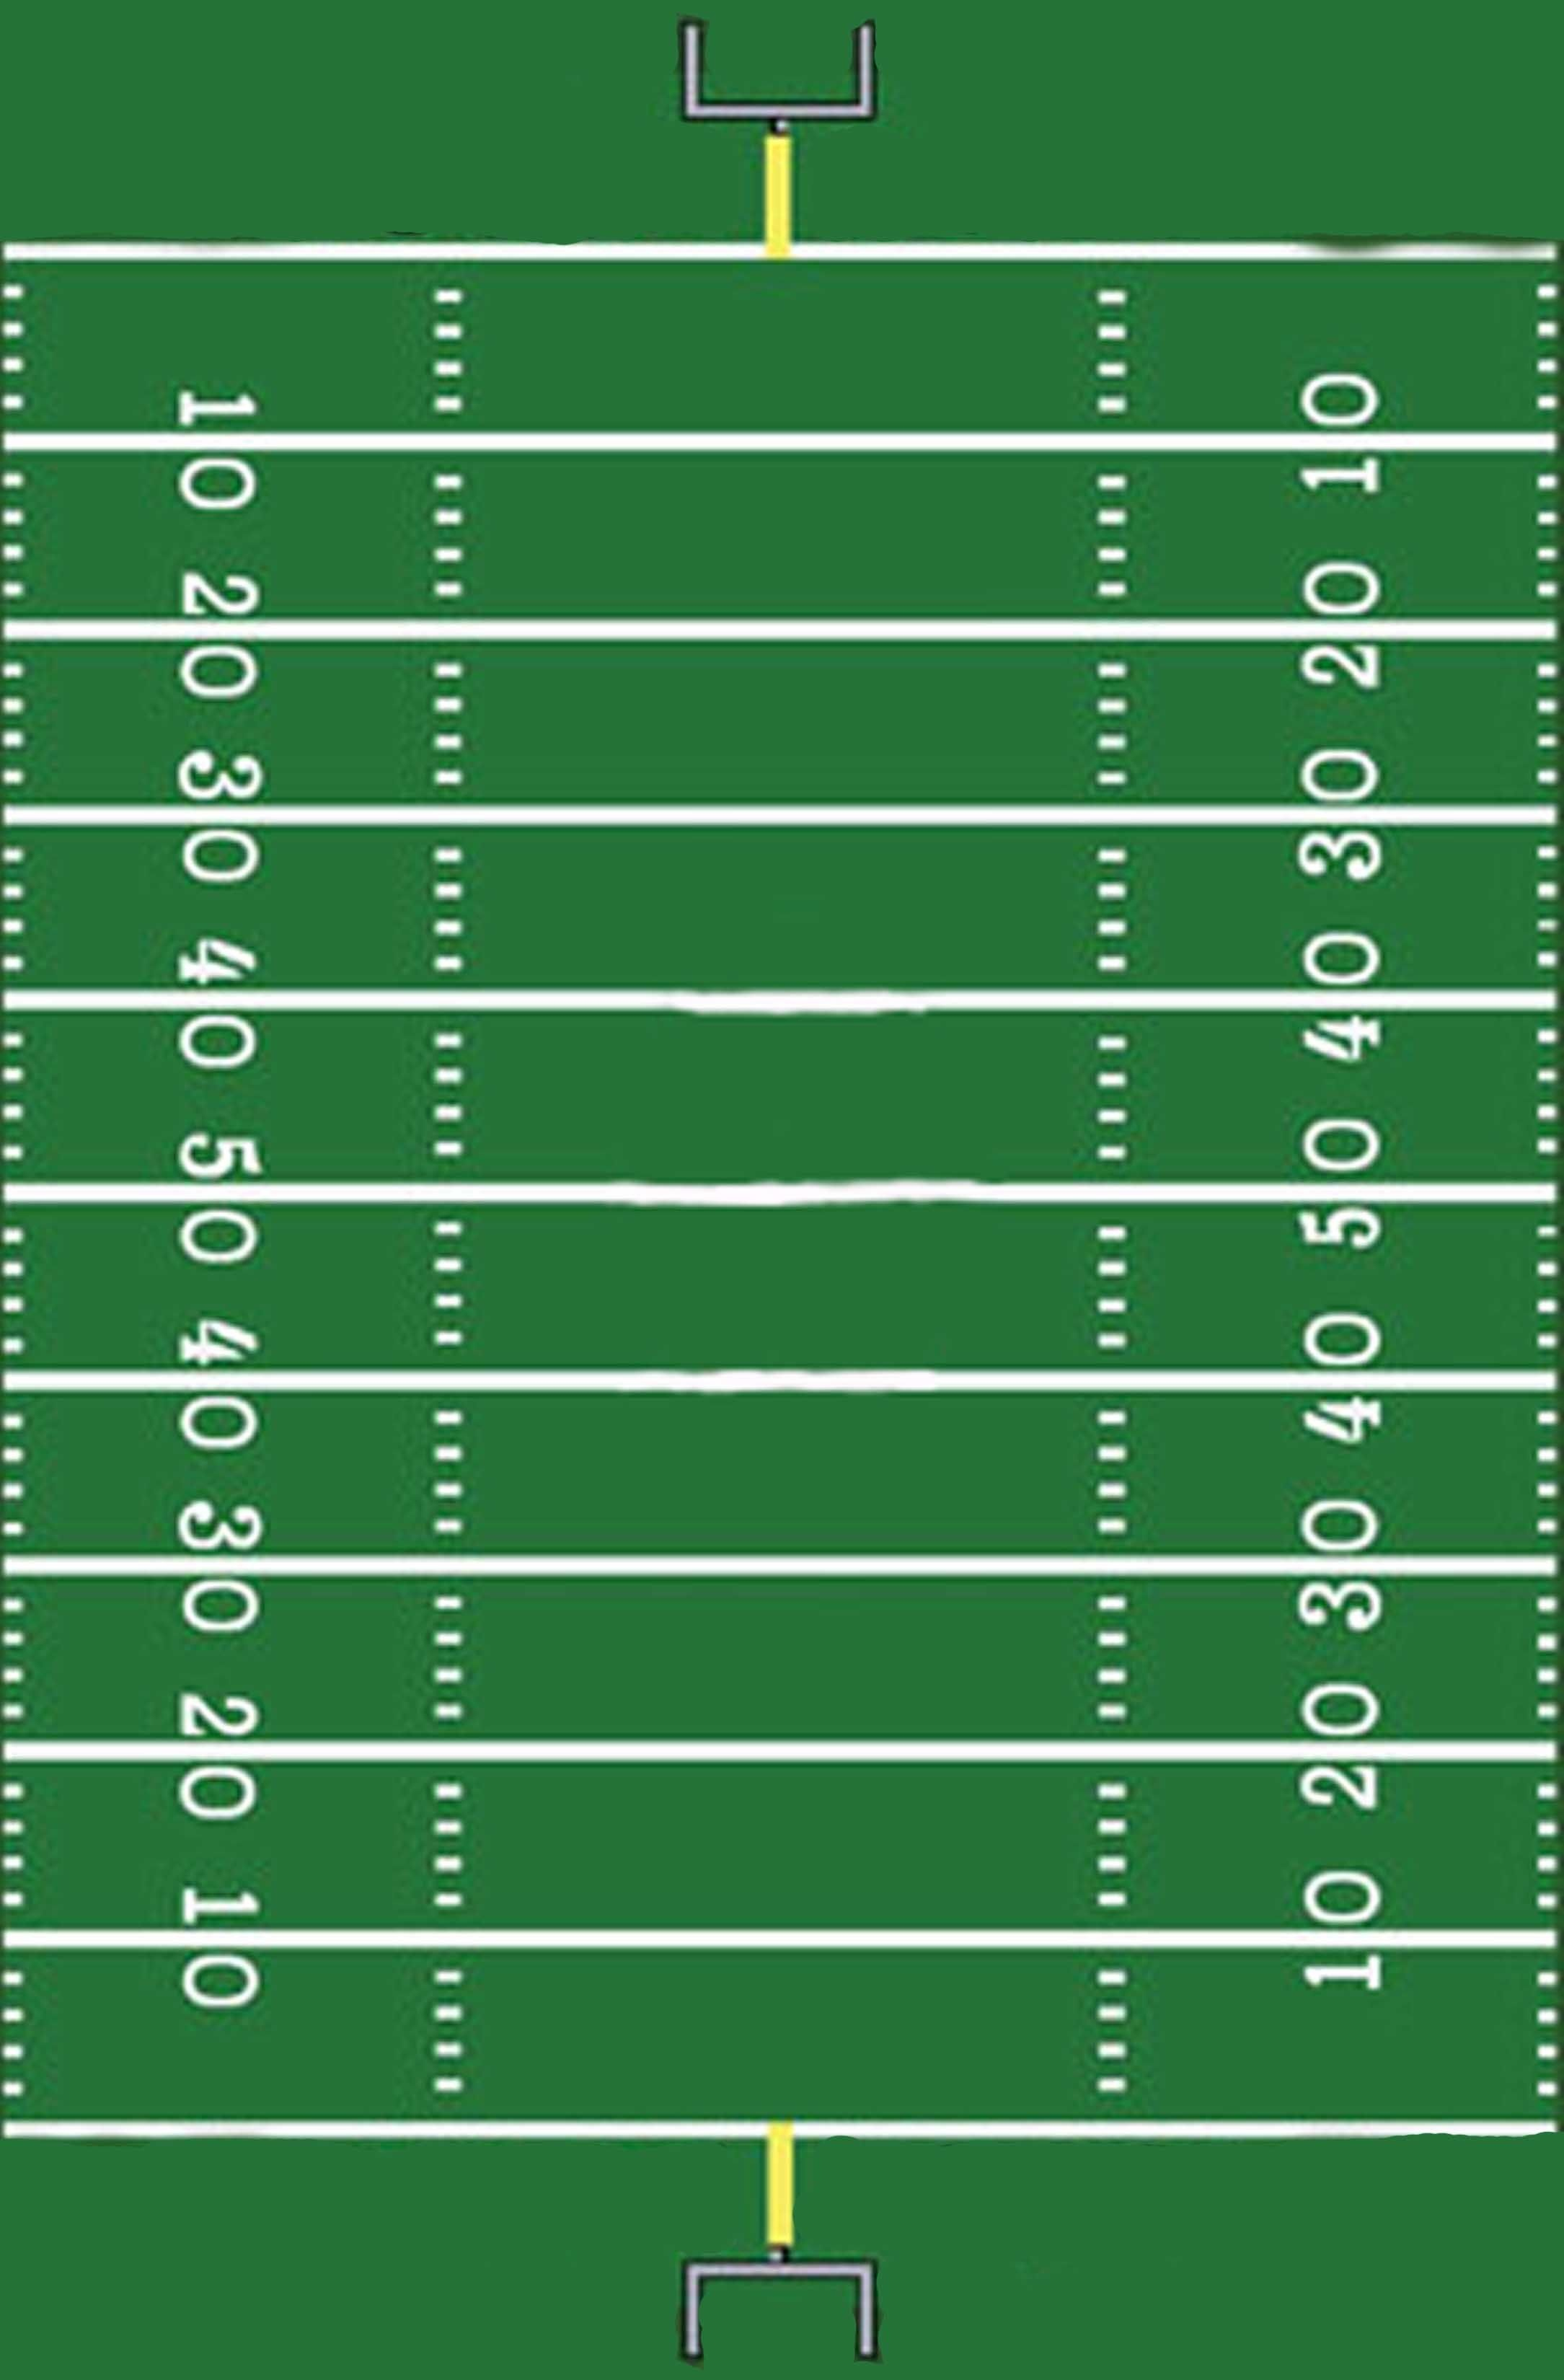 Football Field Template I Made For A Sign | Hunter's 1St Football - Free Printable Football Templates